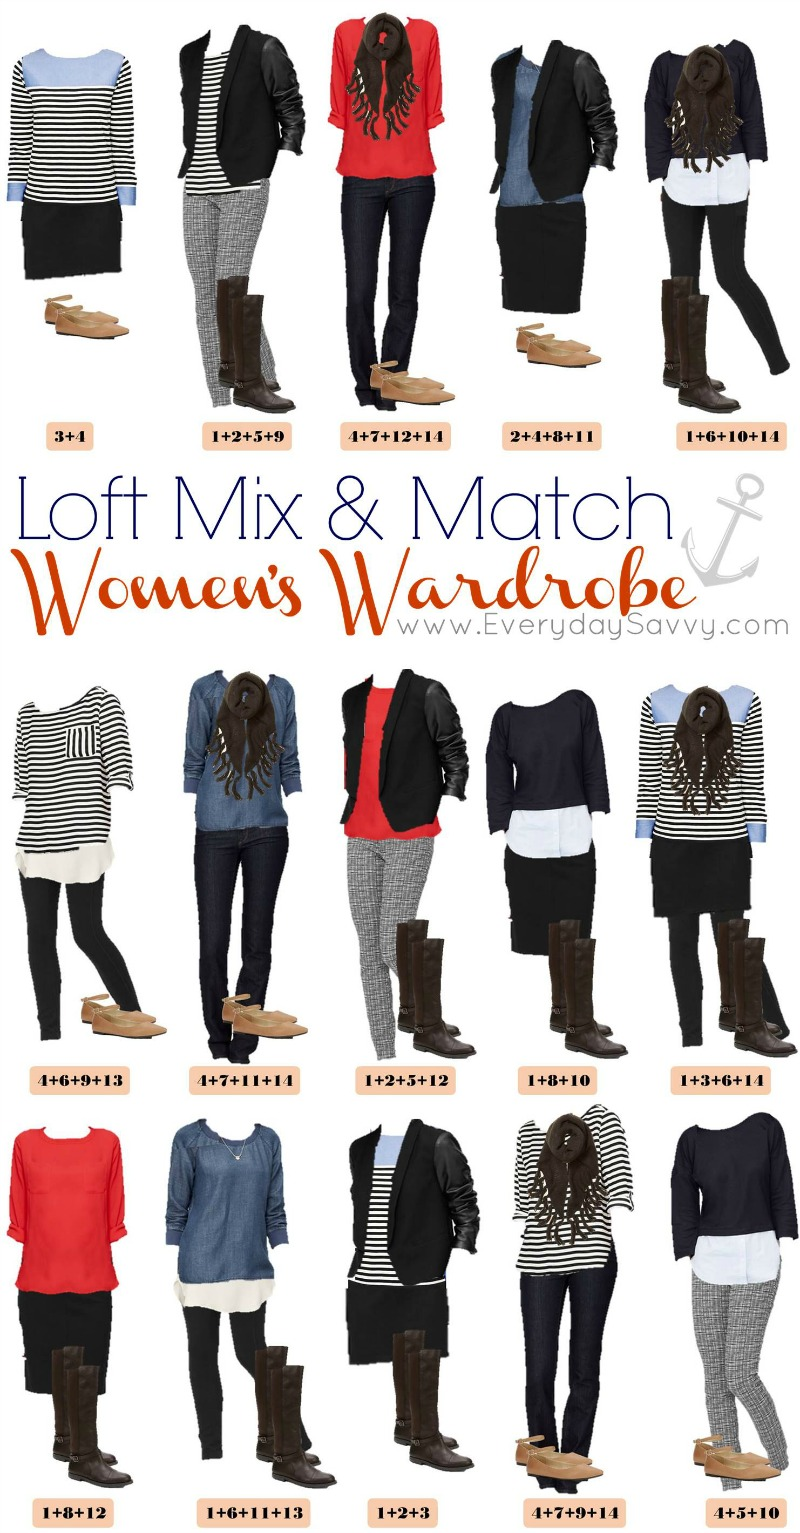 15 mix and match outfits from loft nautical leather. Black Bedroom Furniture Sets. Home Design Ideas